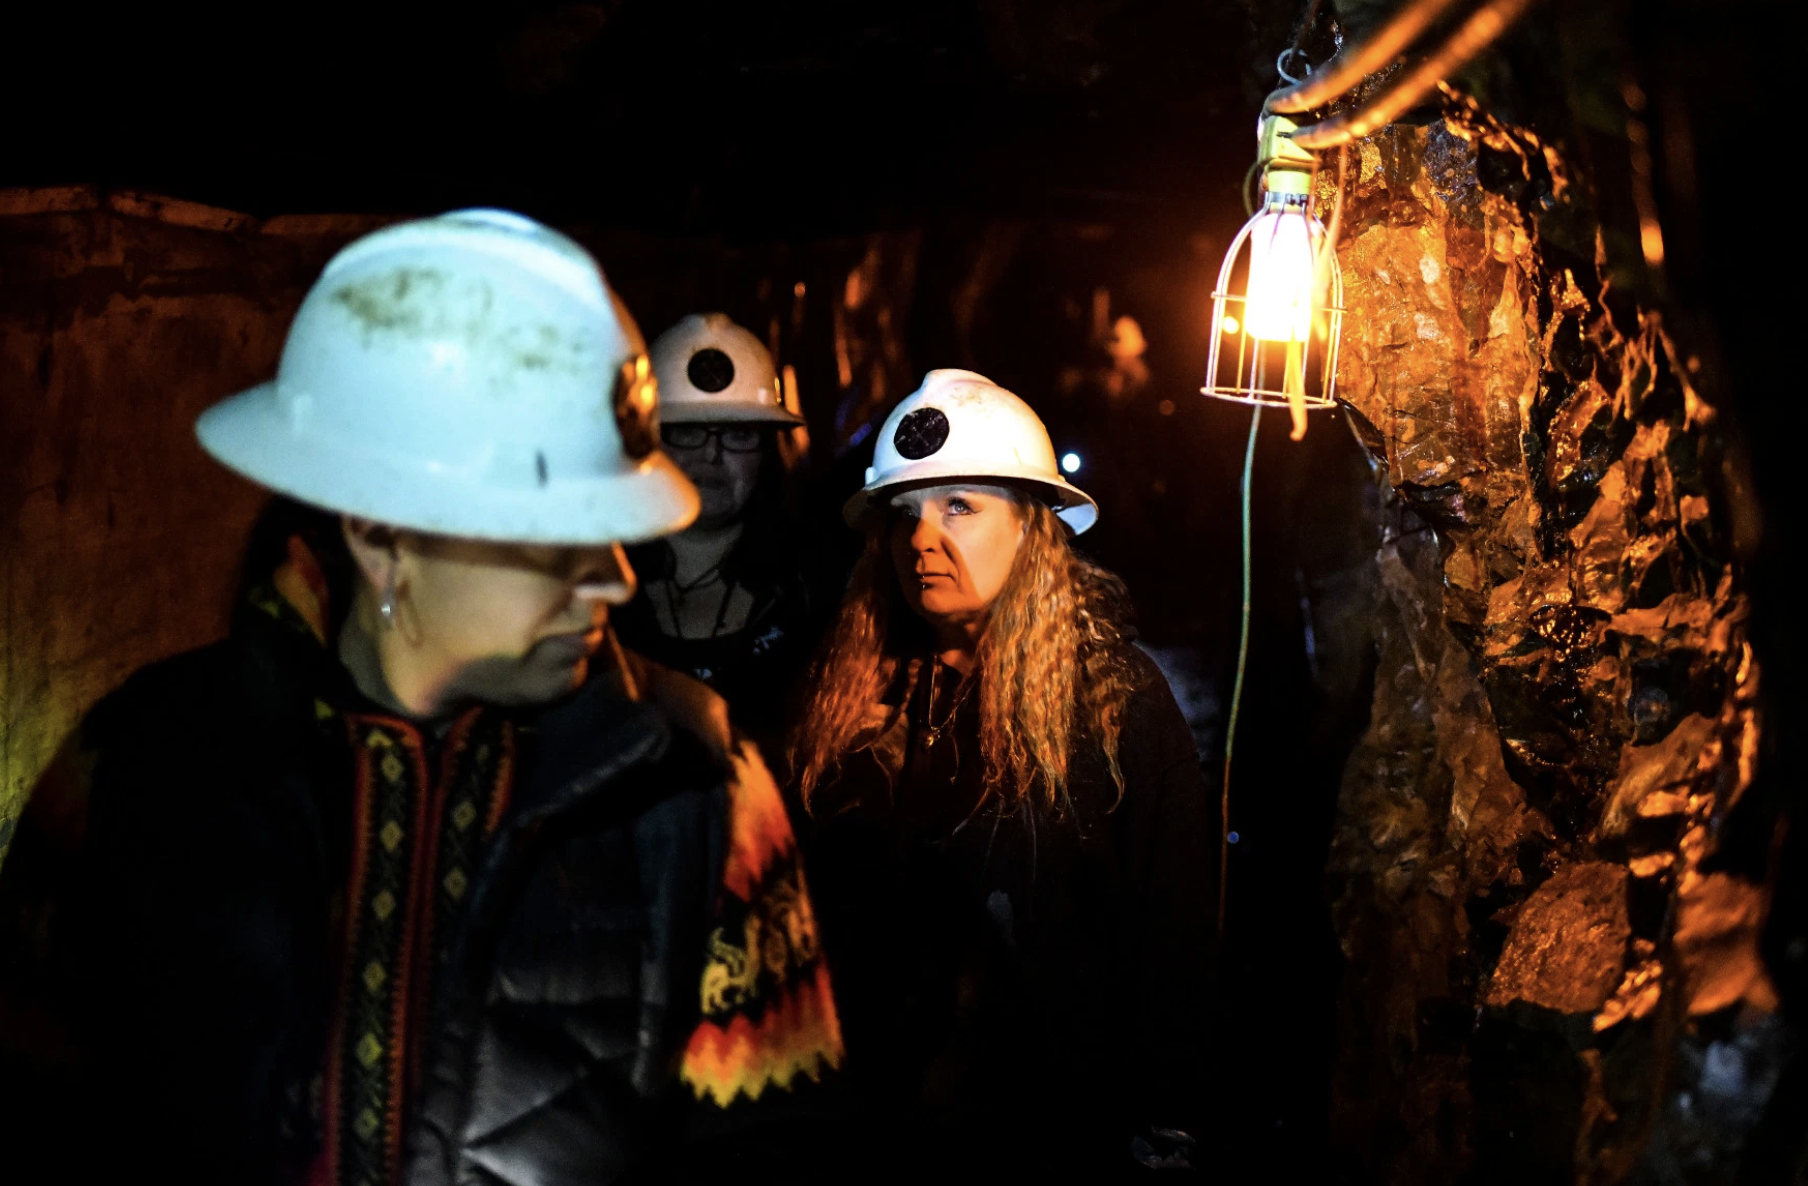 I spent a night with ghost hunters in a Colorado gold mine and lived to tell this tale